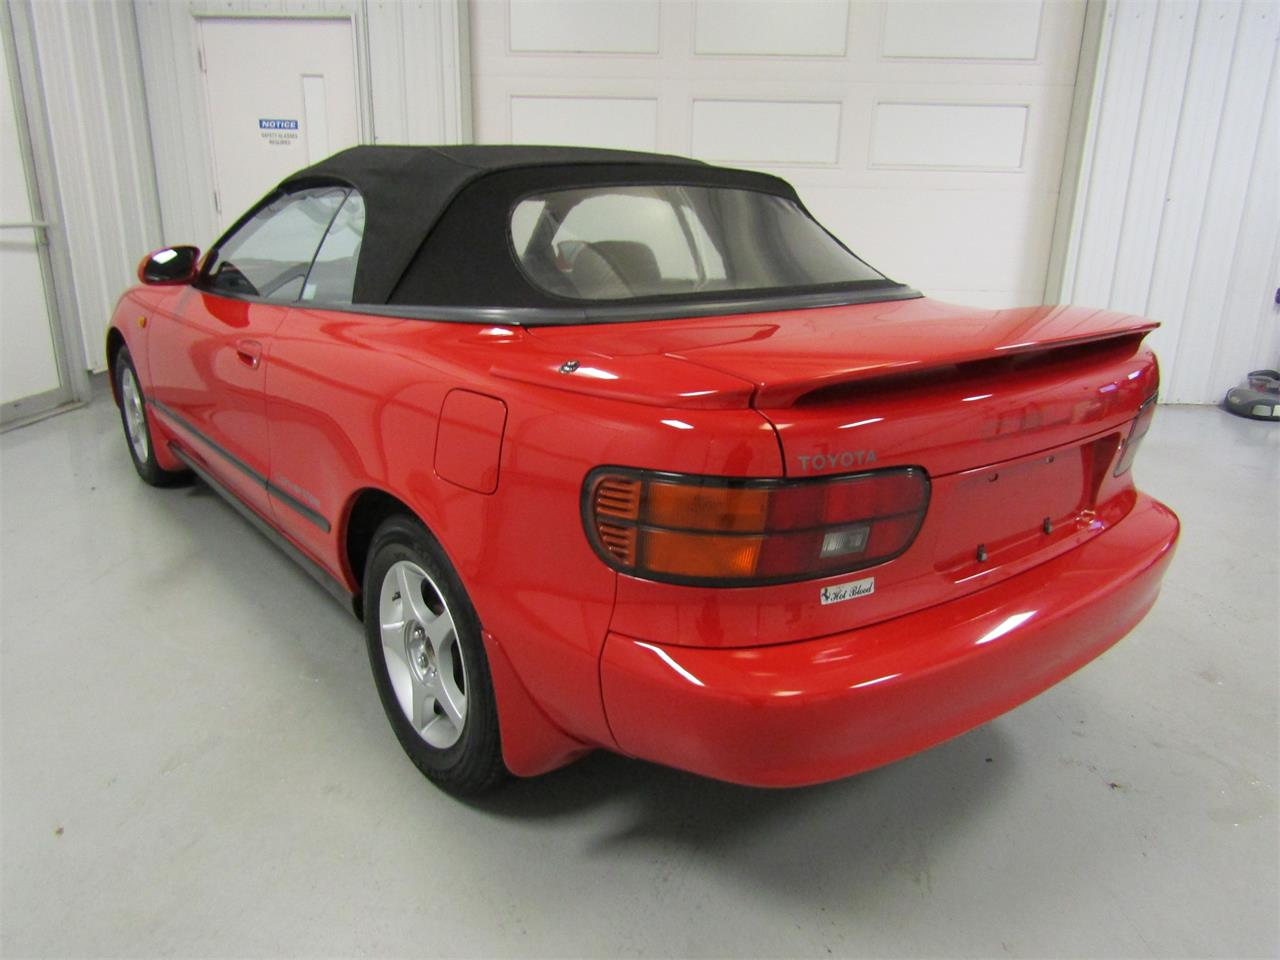 Large Picture of 1991 Toyota Celica located in Virginia - $9,999.00 - OV71